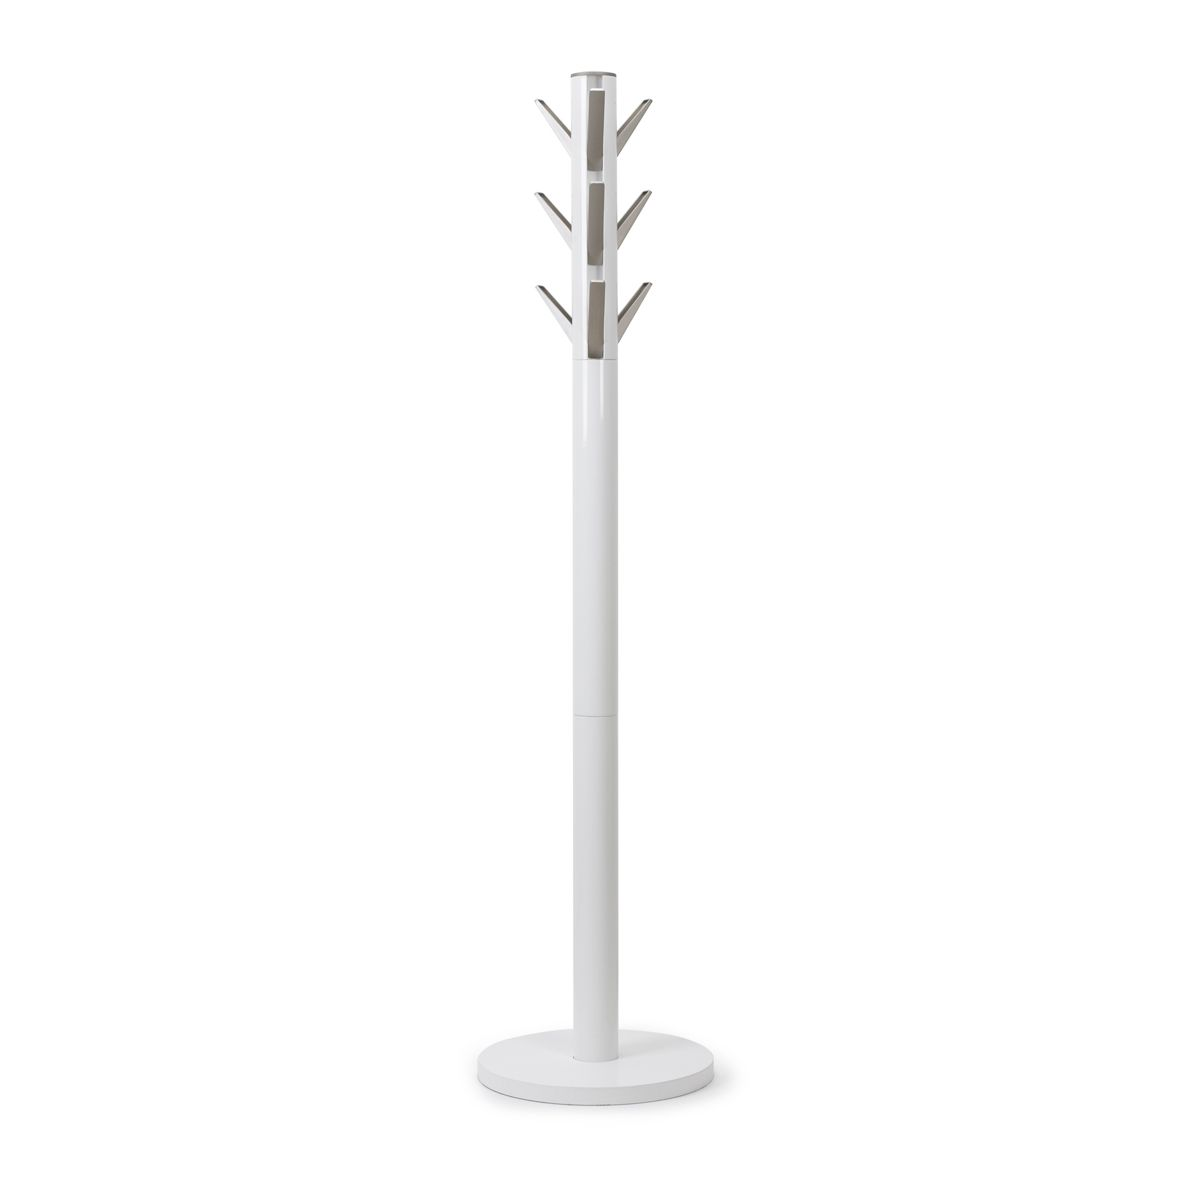 Umbra Flapper Coat and Hat Stand White H165cm x Base 57cm Diameter